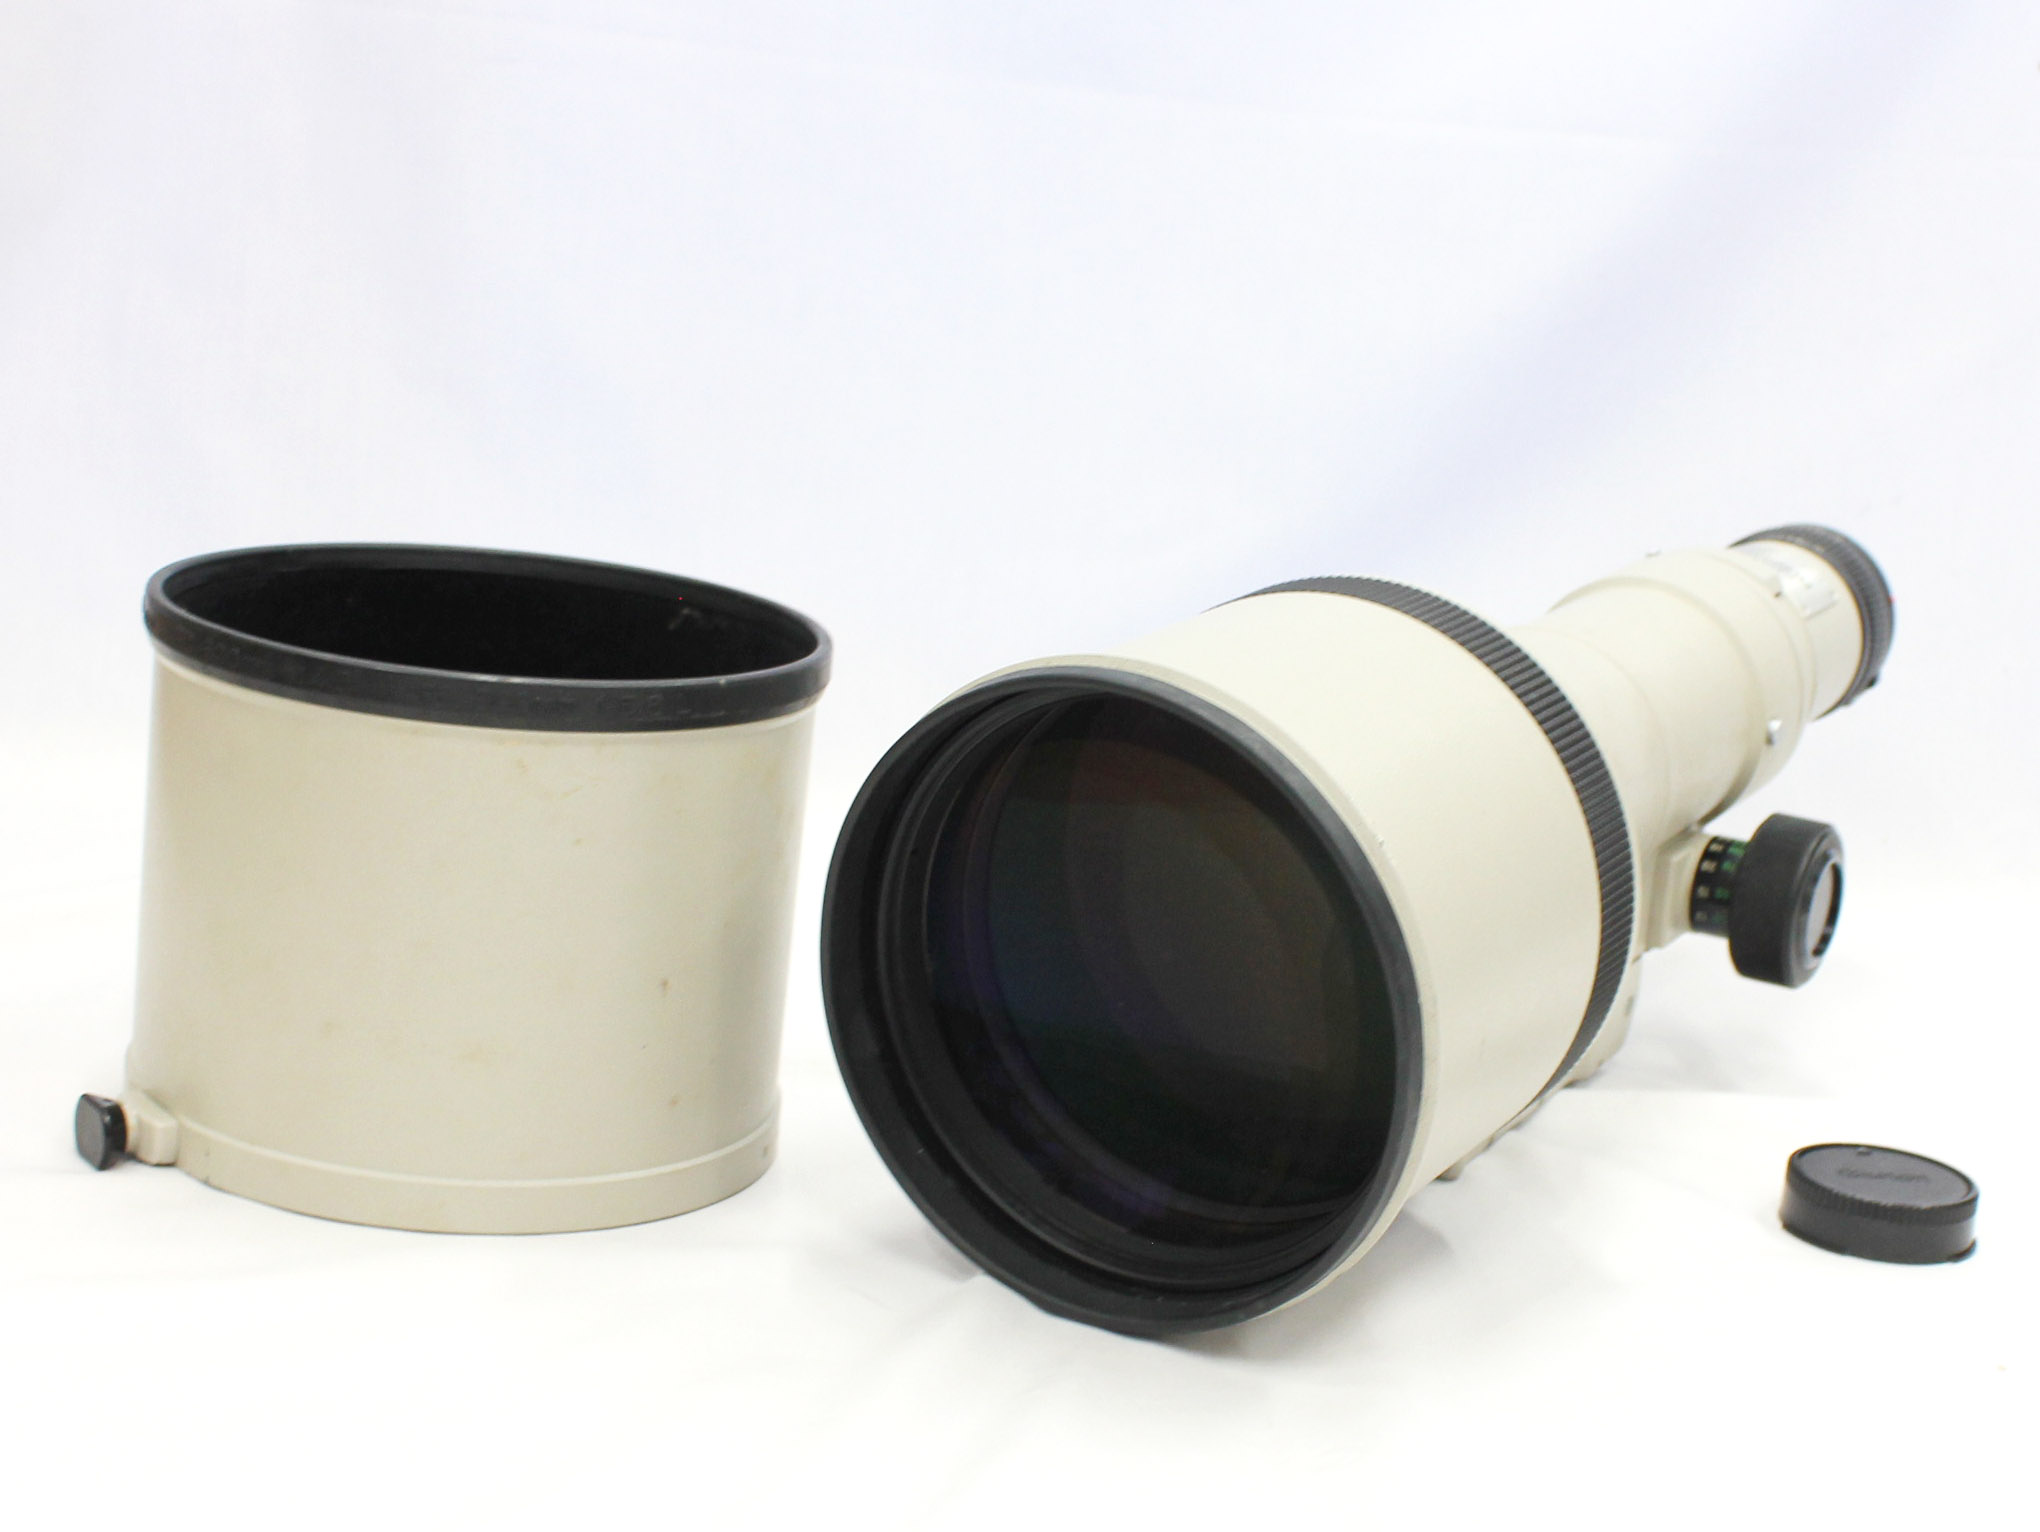 Canon New FD NFD 600mm F/4.5 MF Telephoto Lens from Japan